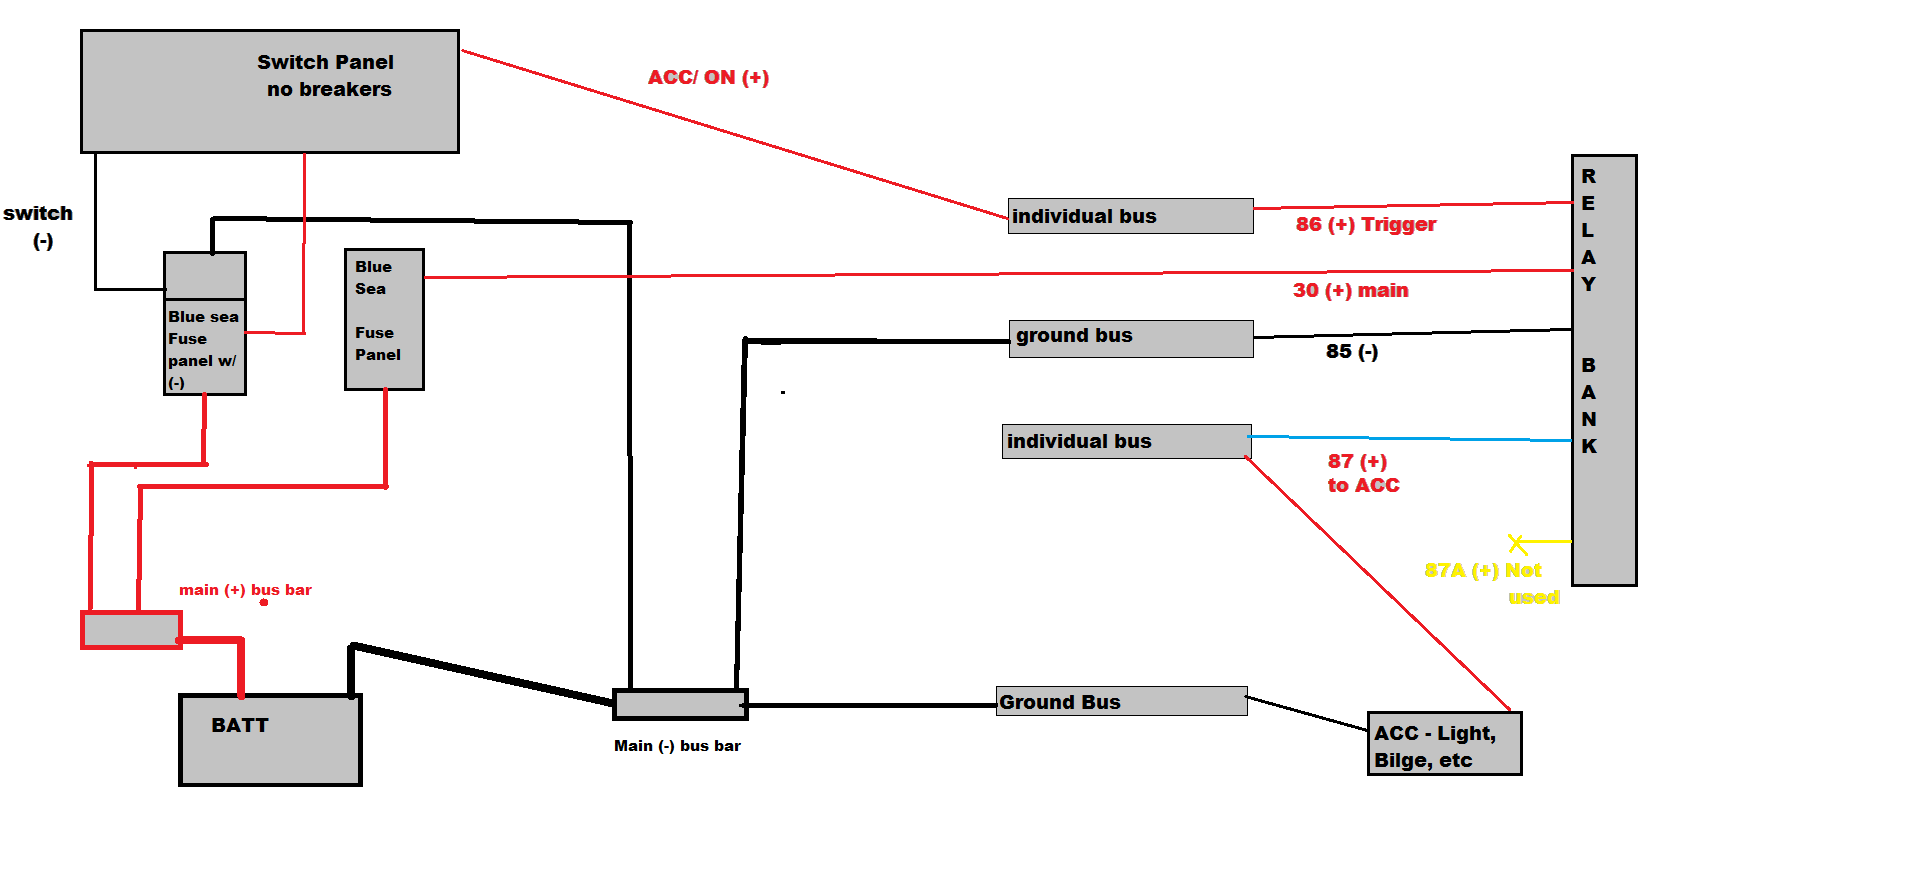 Wiring Diagram For Panel  Is It Correct